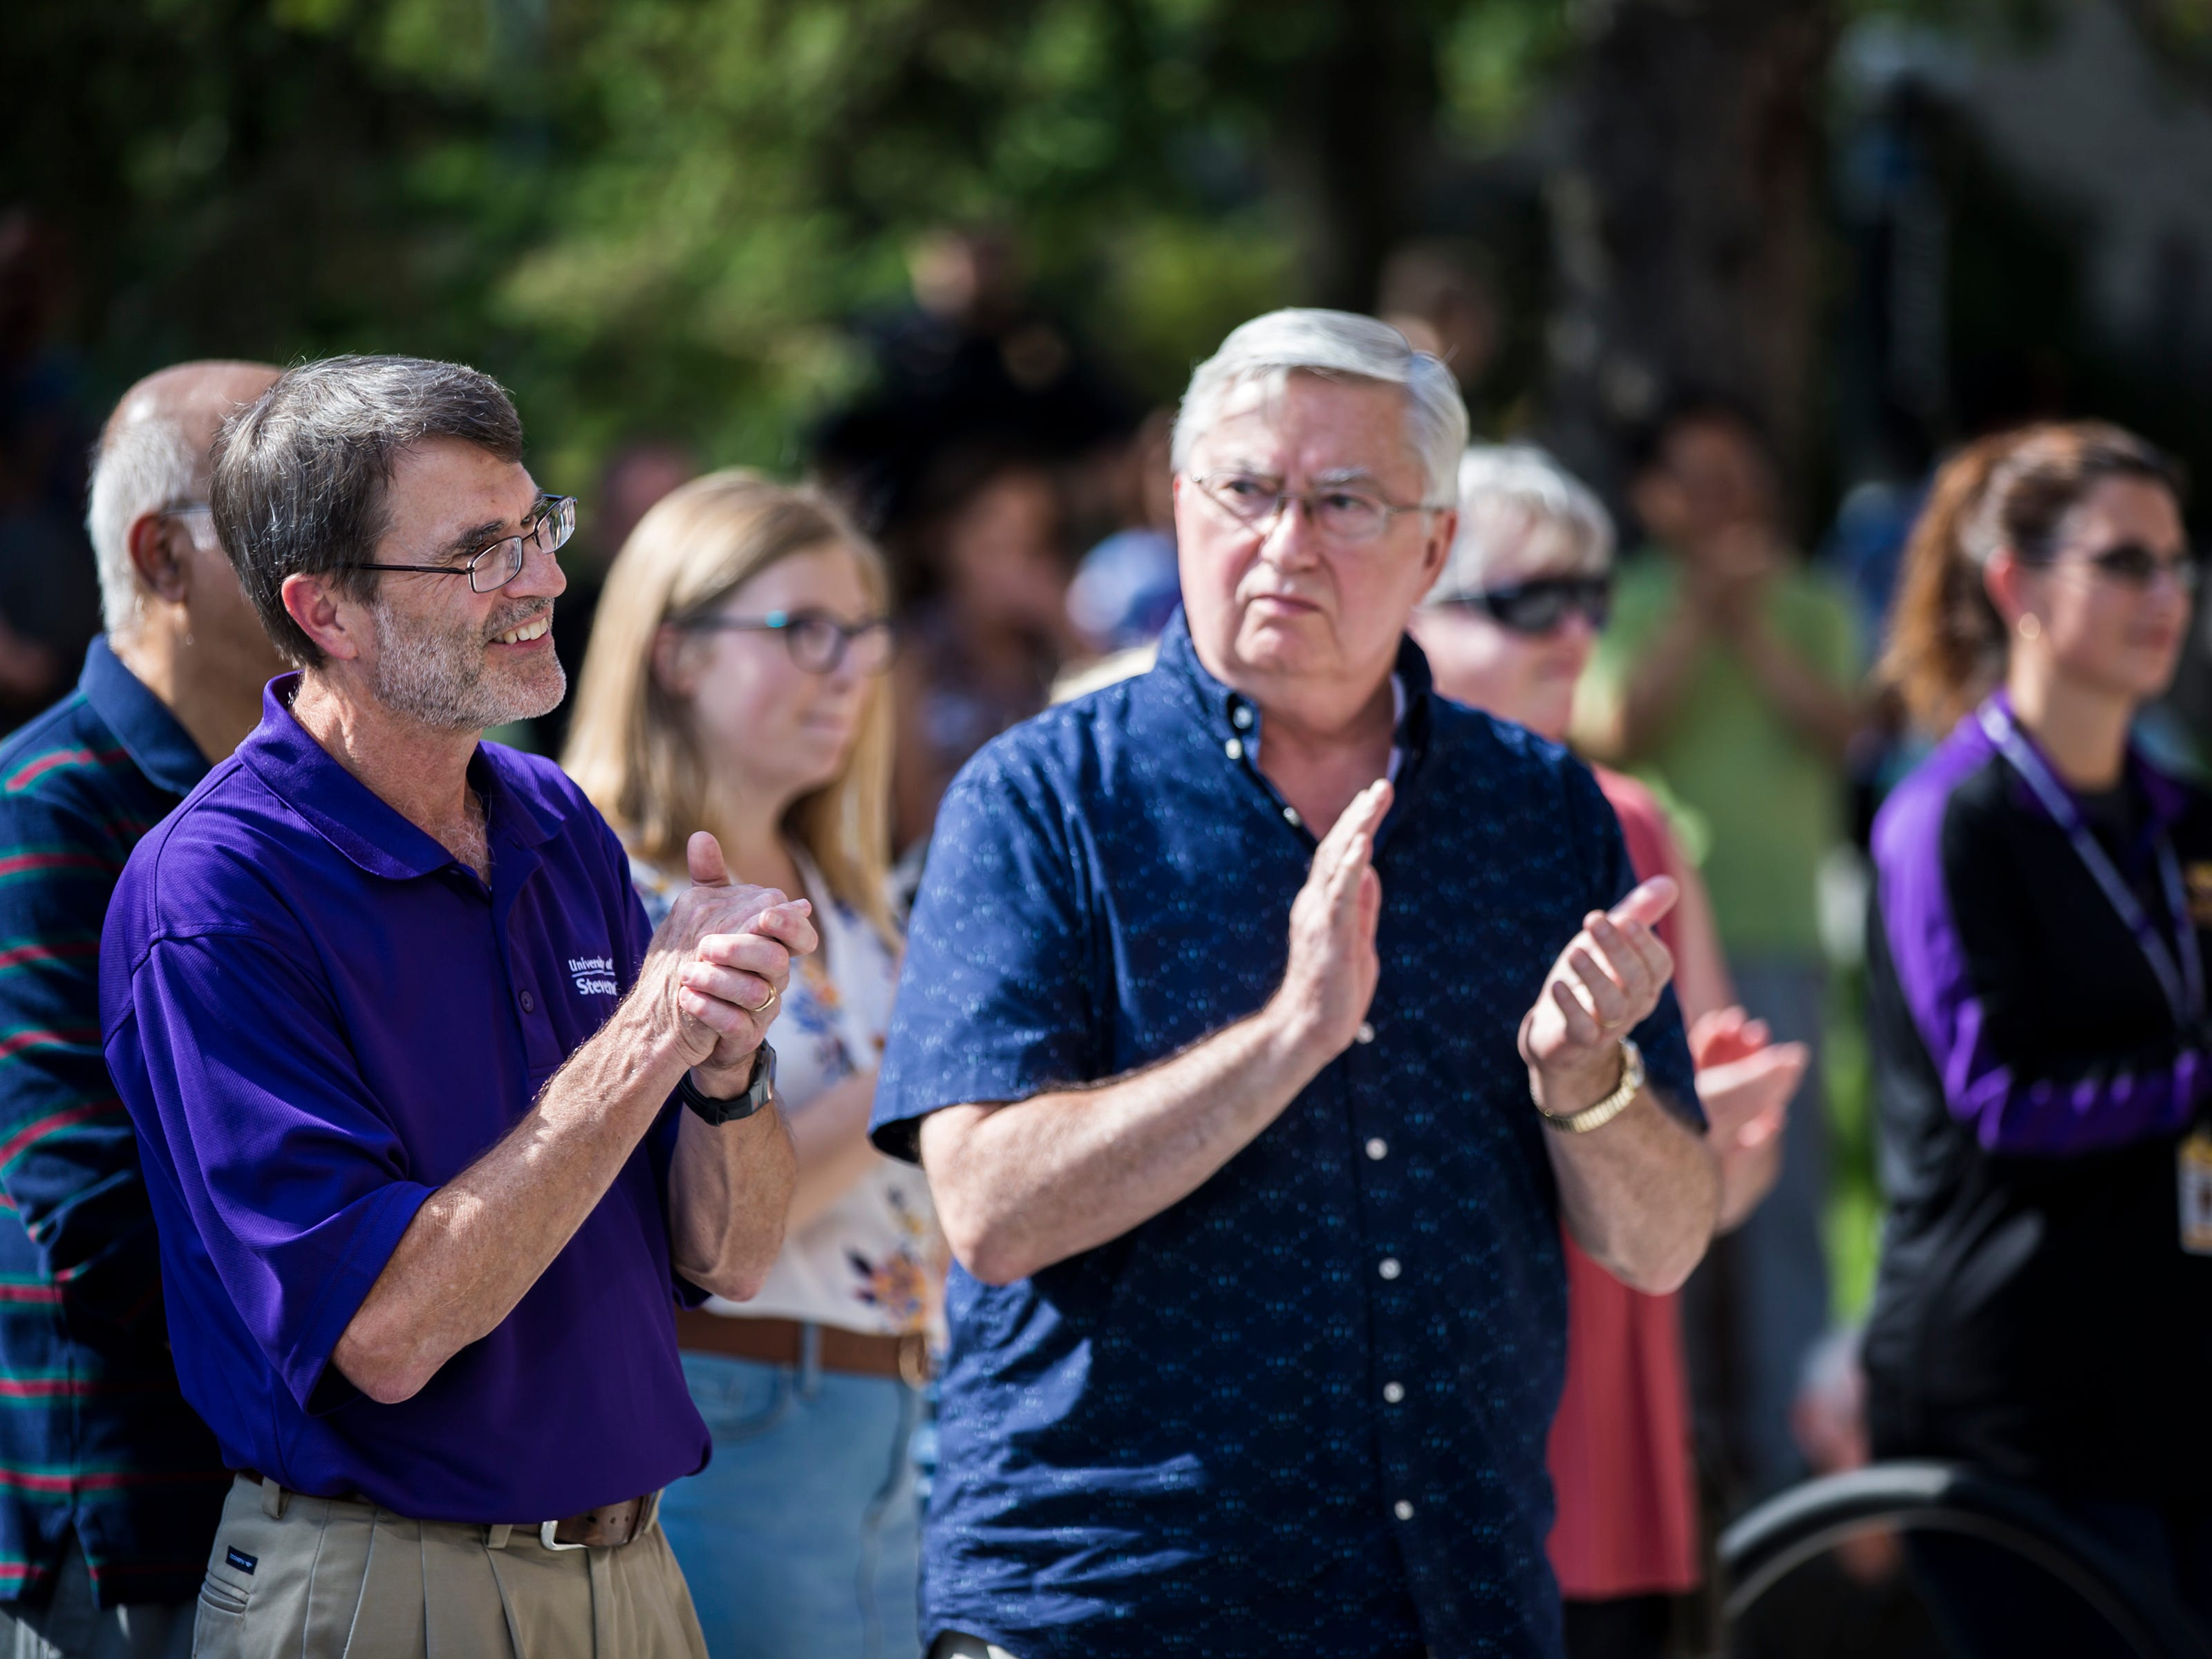 People react to a speaker's comments during the opening ceremony for the Chemistry Biology Building at the University of Wisconsin-Stevens Point in Stevens Point, Wis., Sept. 14, 2018.